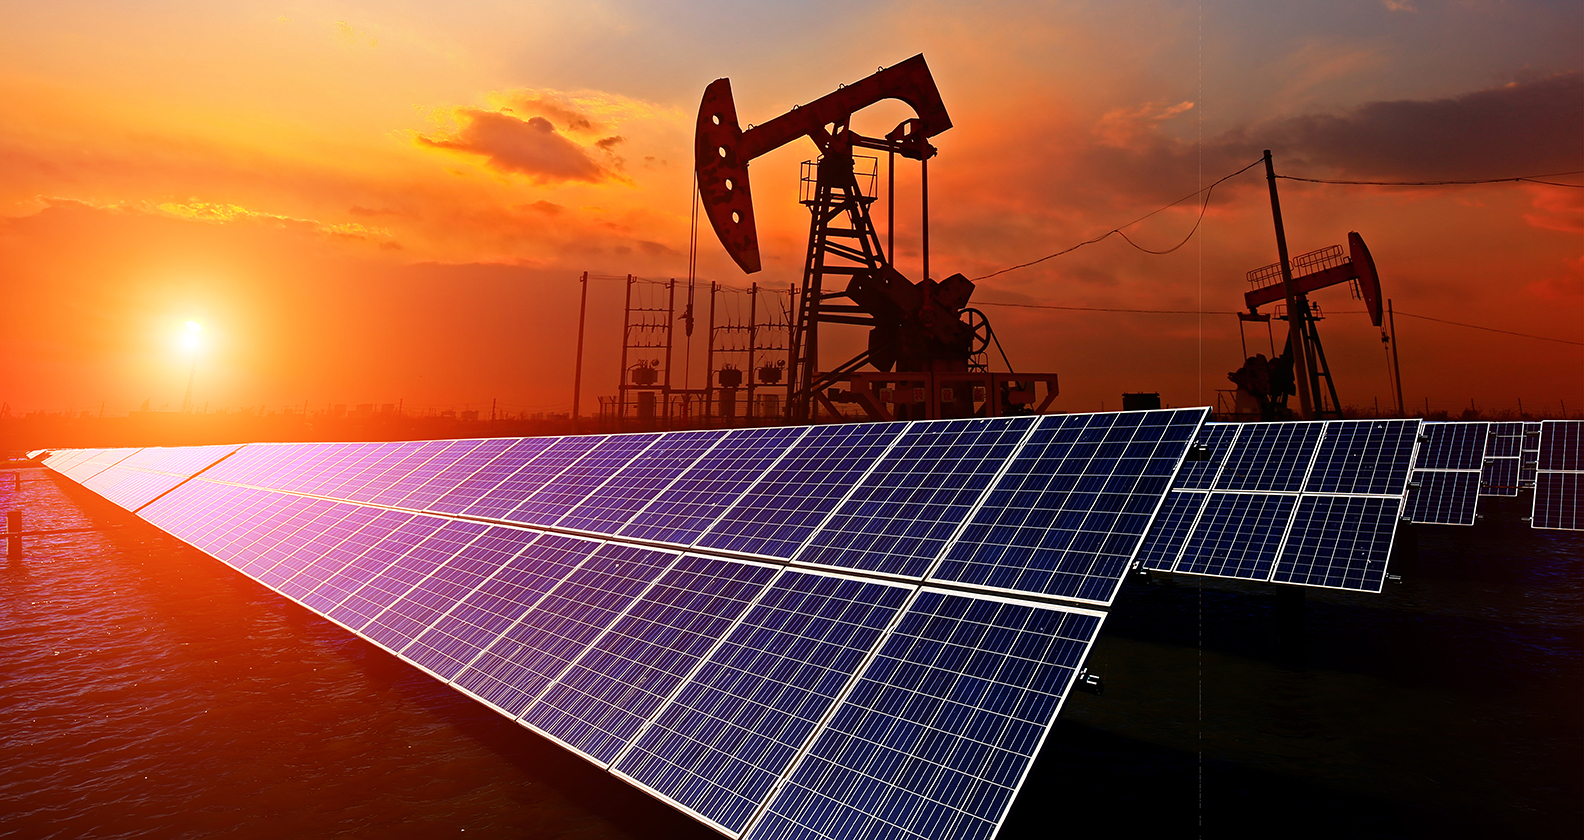 Oil and gas site powered by solar power.